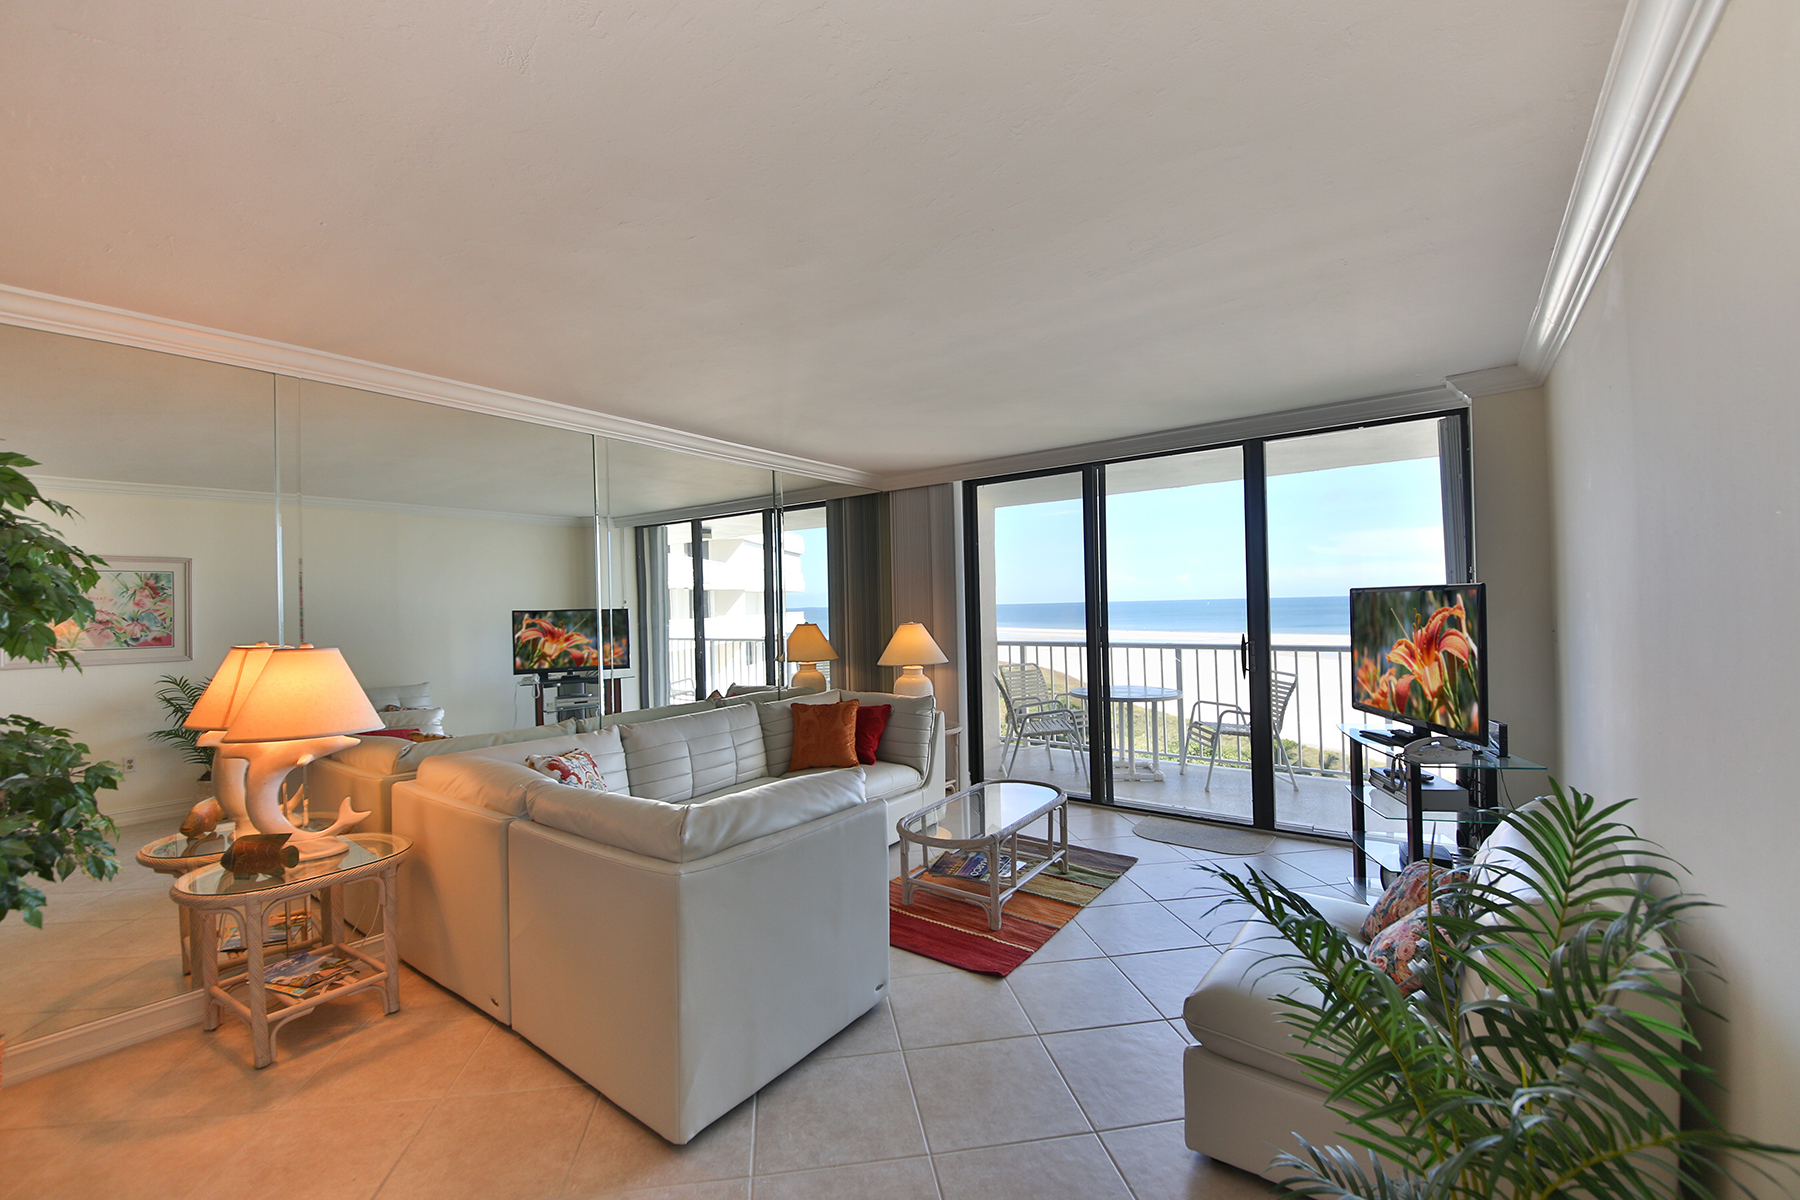 شقة بعمارة للـ Sale في MARCO ISLAND - SOUTH SEAS 320 Seaview Ct 905, Marco Island, Florida, 34145 United States